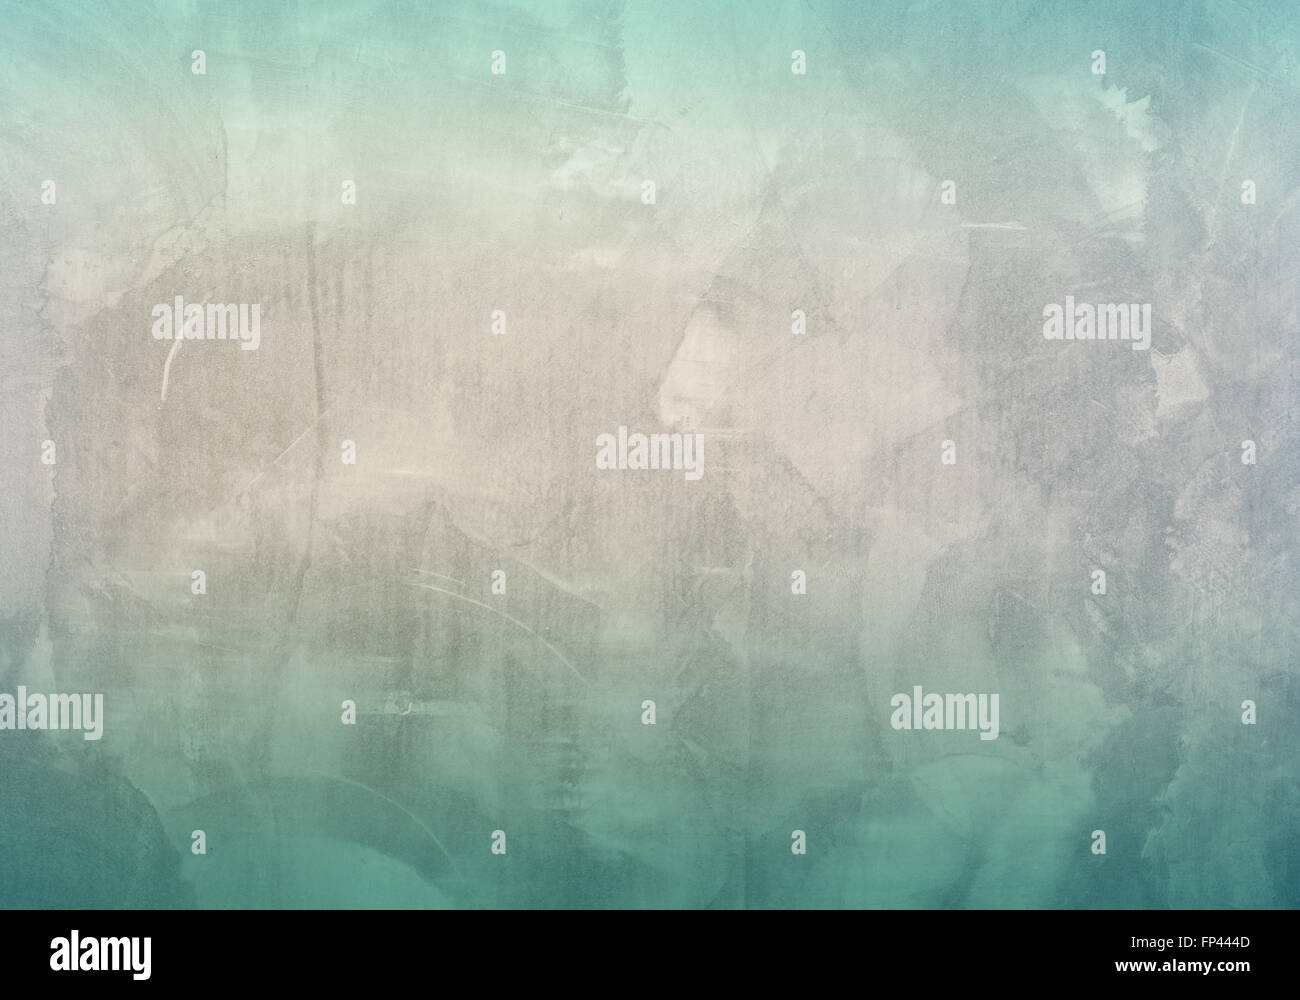 Background with delicate abstract  texture  for printing brochures or papers. - Stock Image